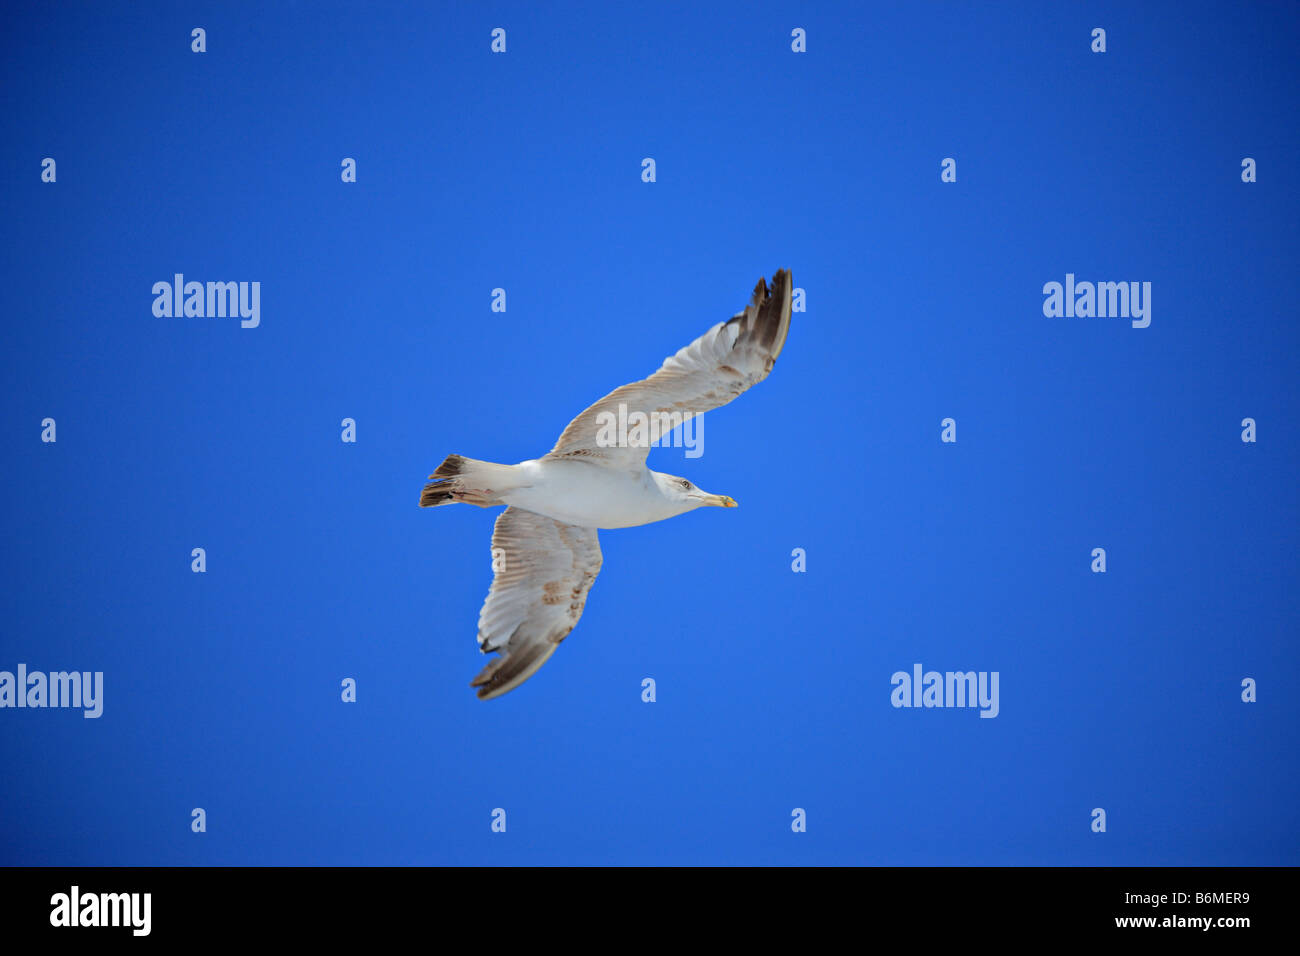 Sea gull in flight - Stock Image